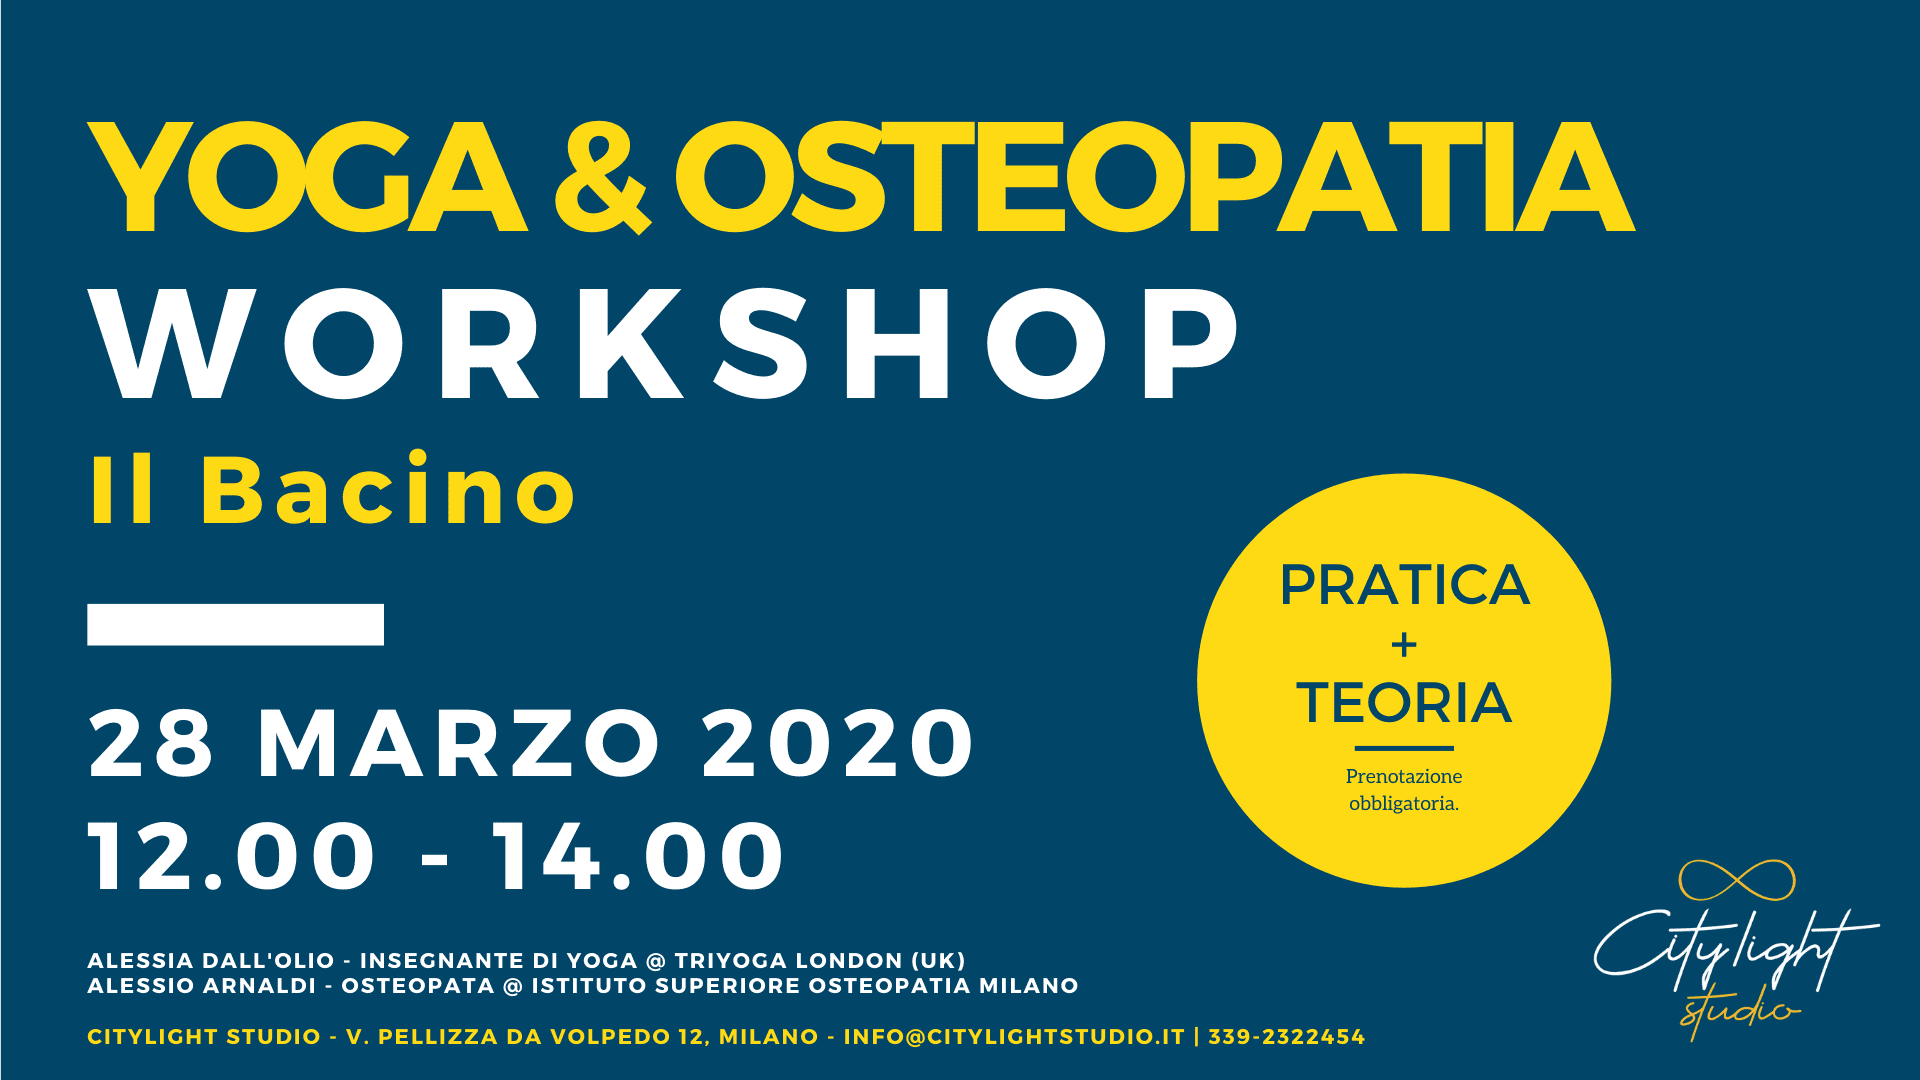 Yoga e Osteopatia